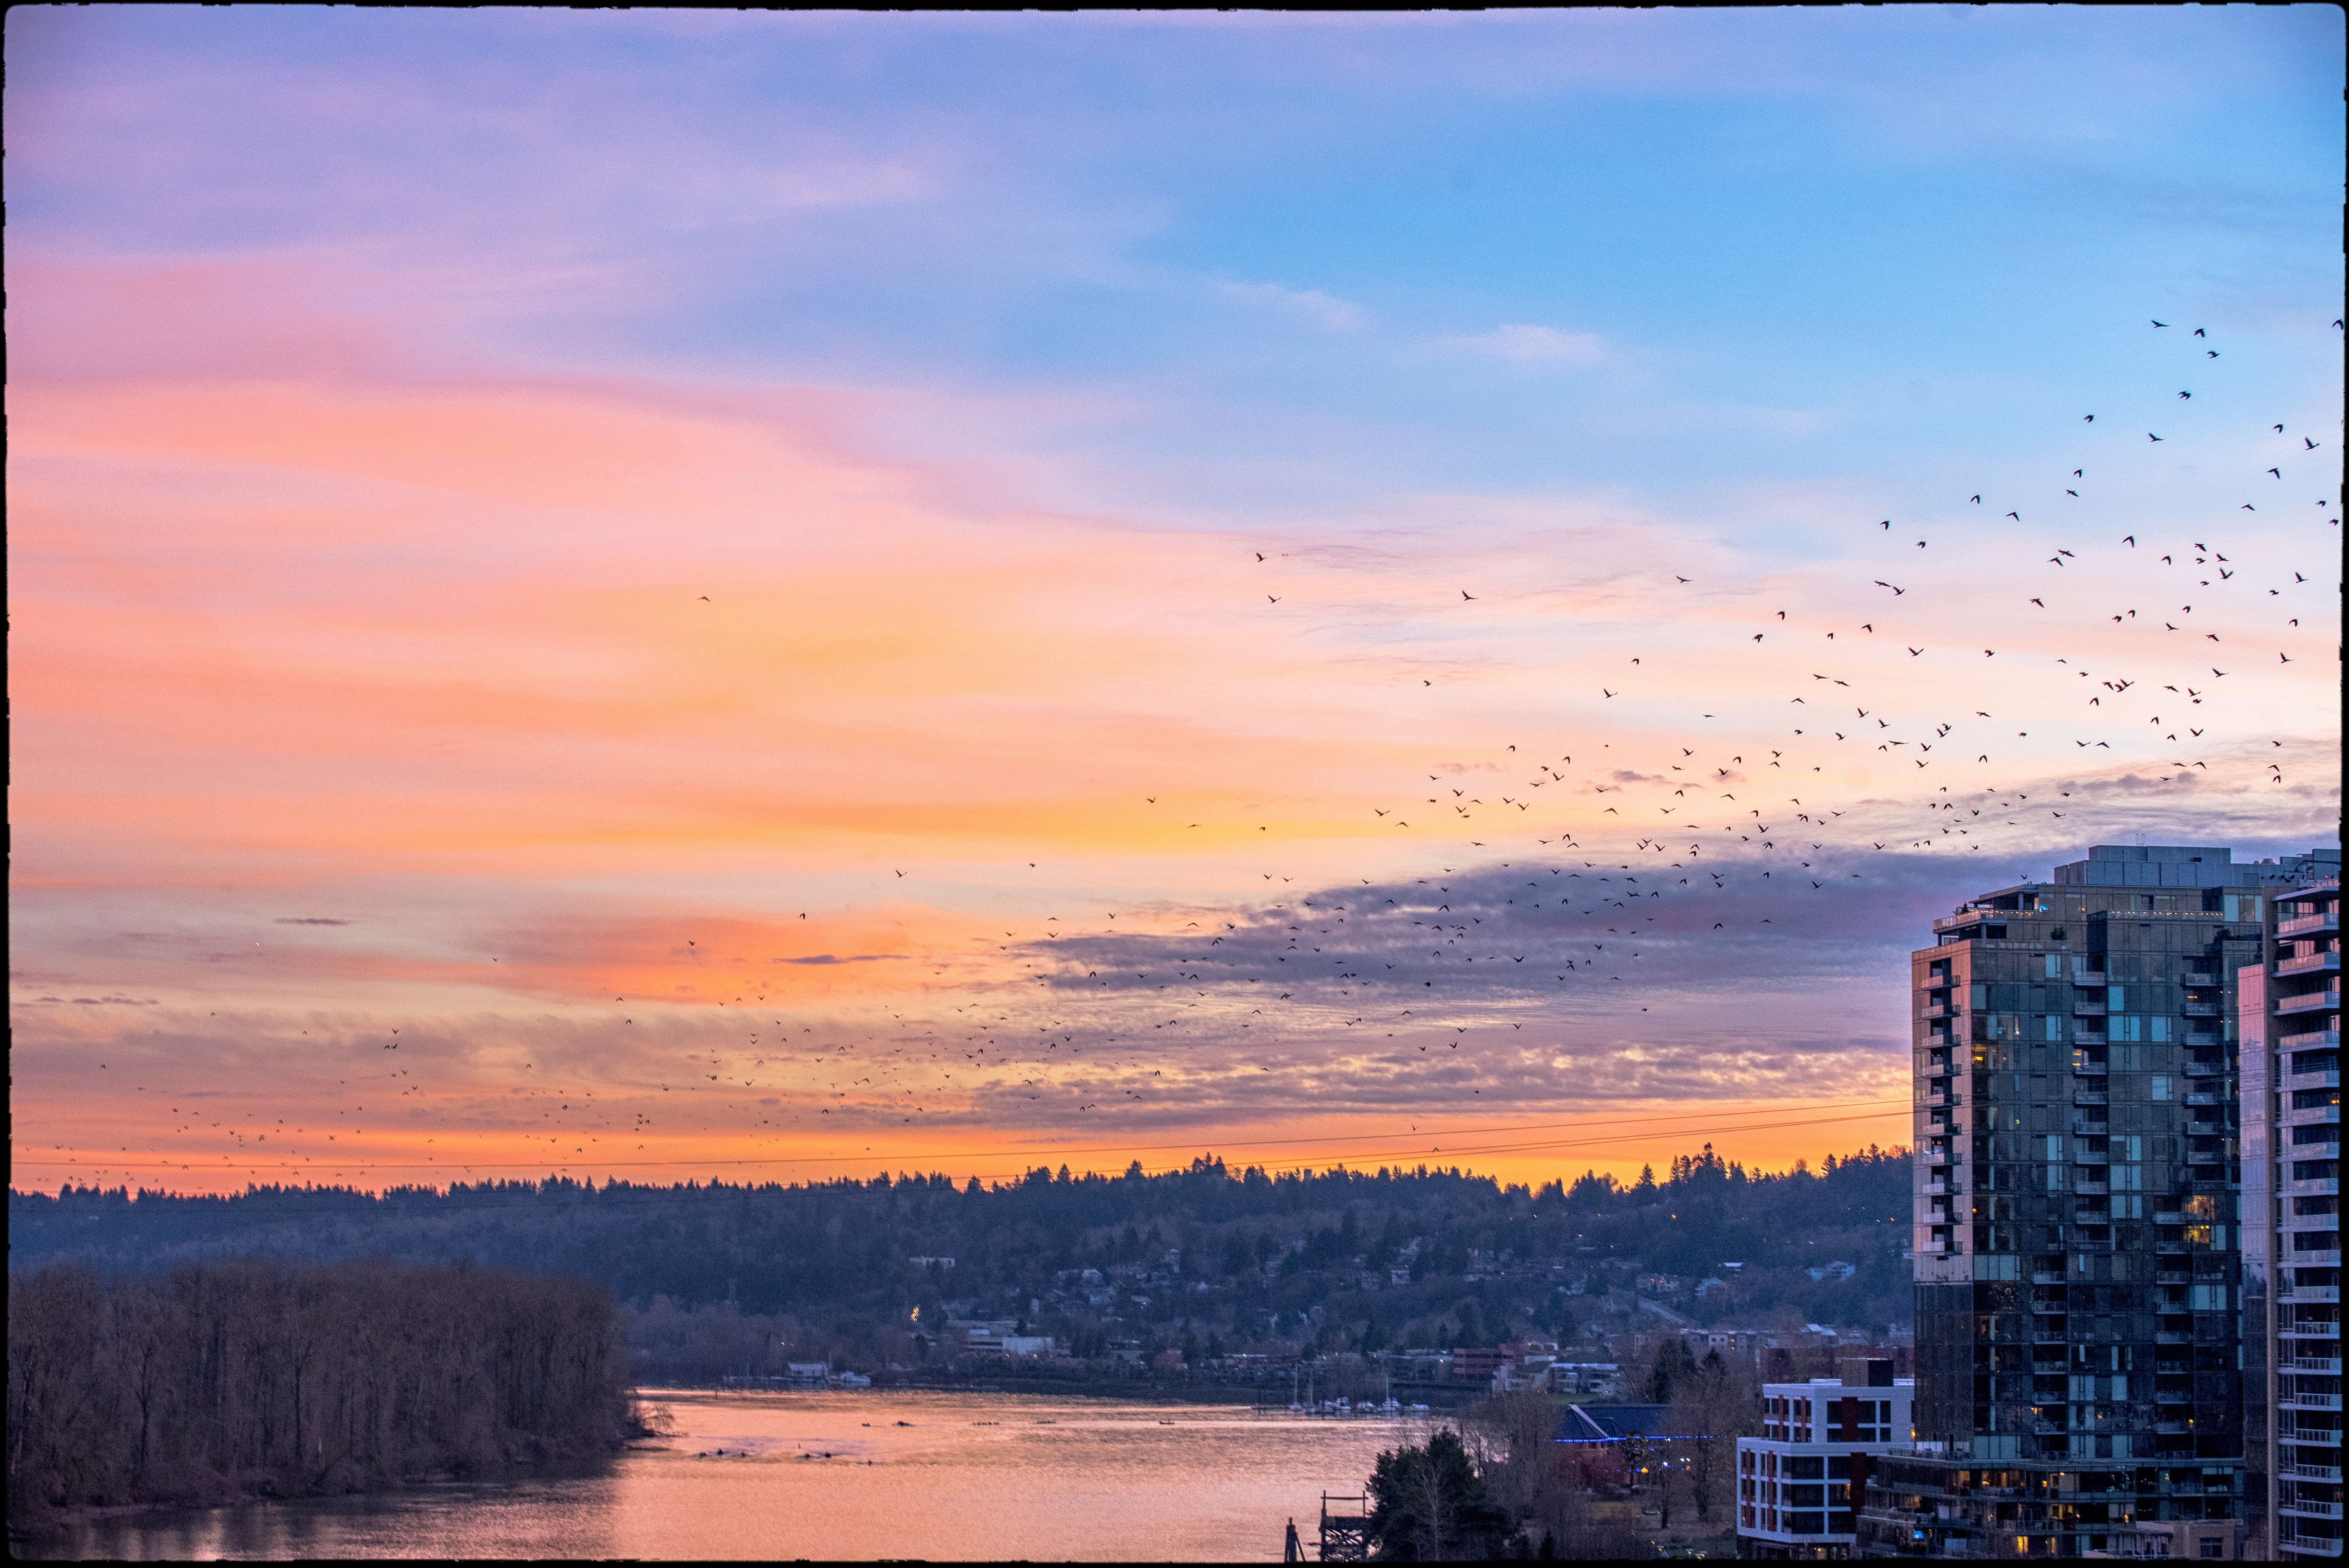 South Waterfront susnets and birds (1 of 1)